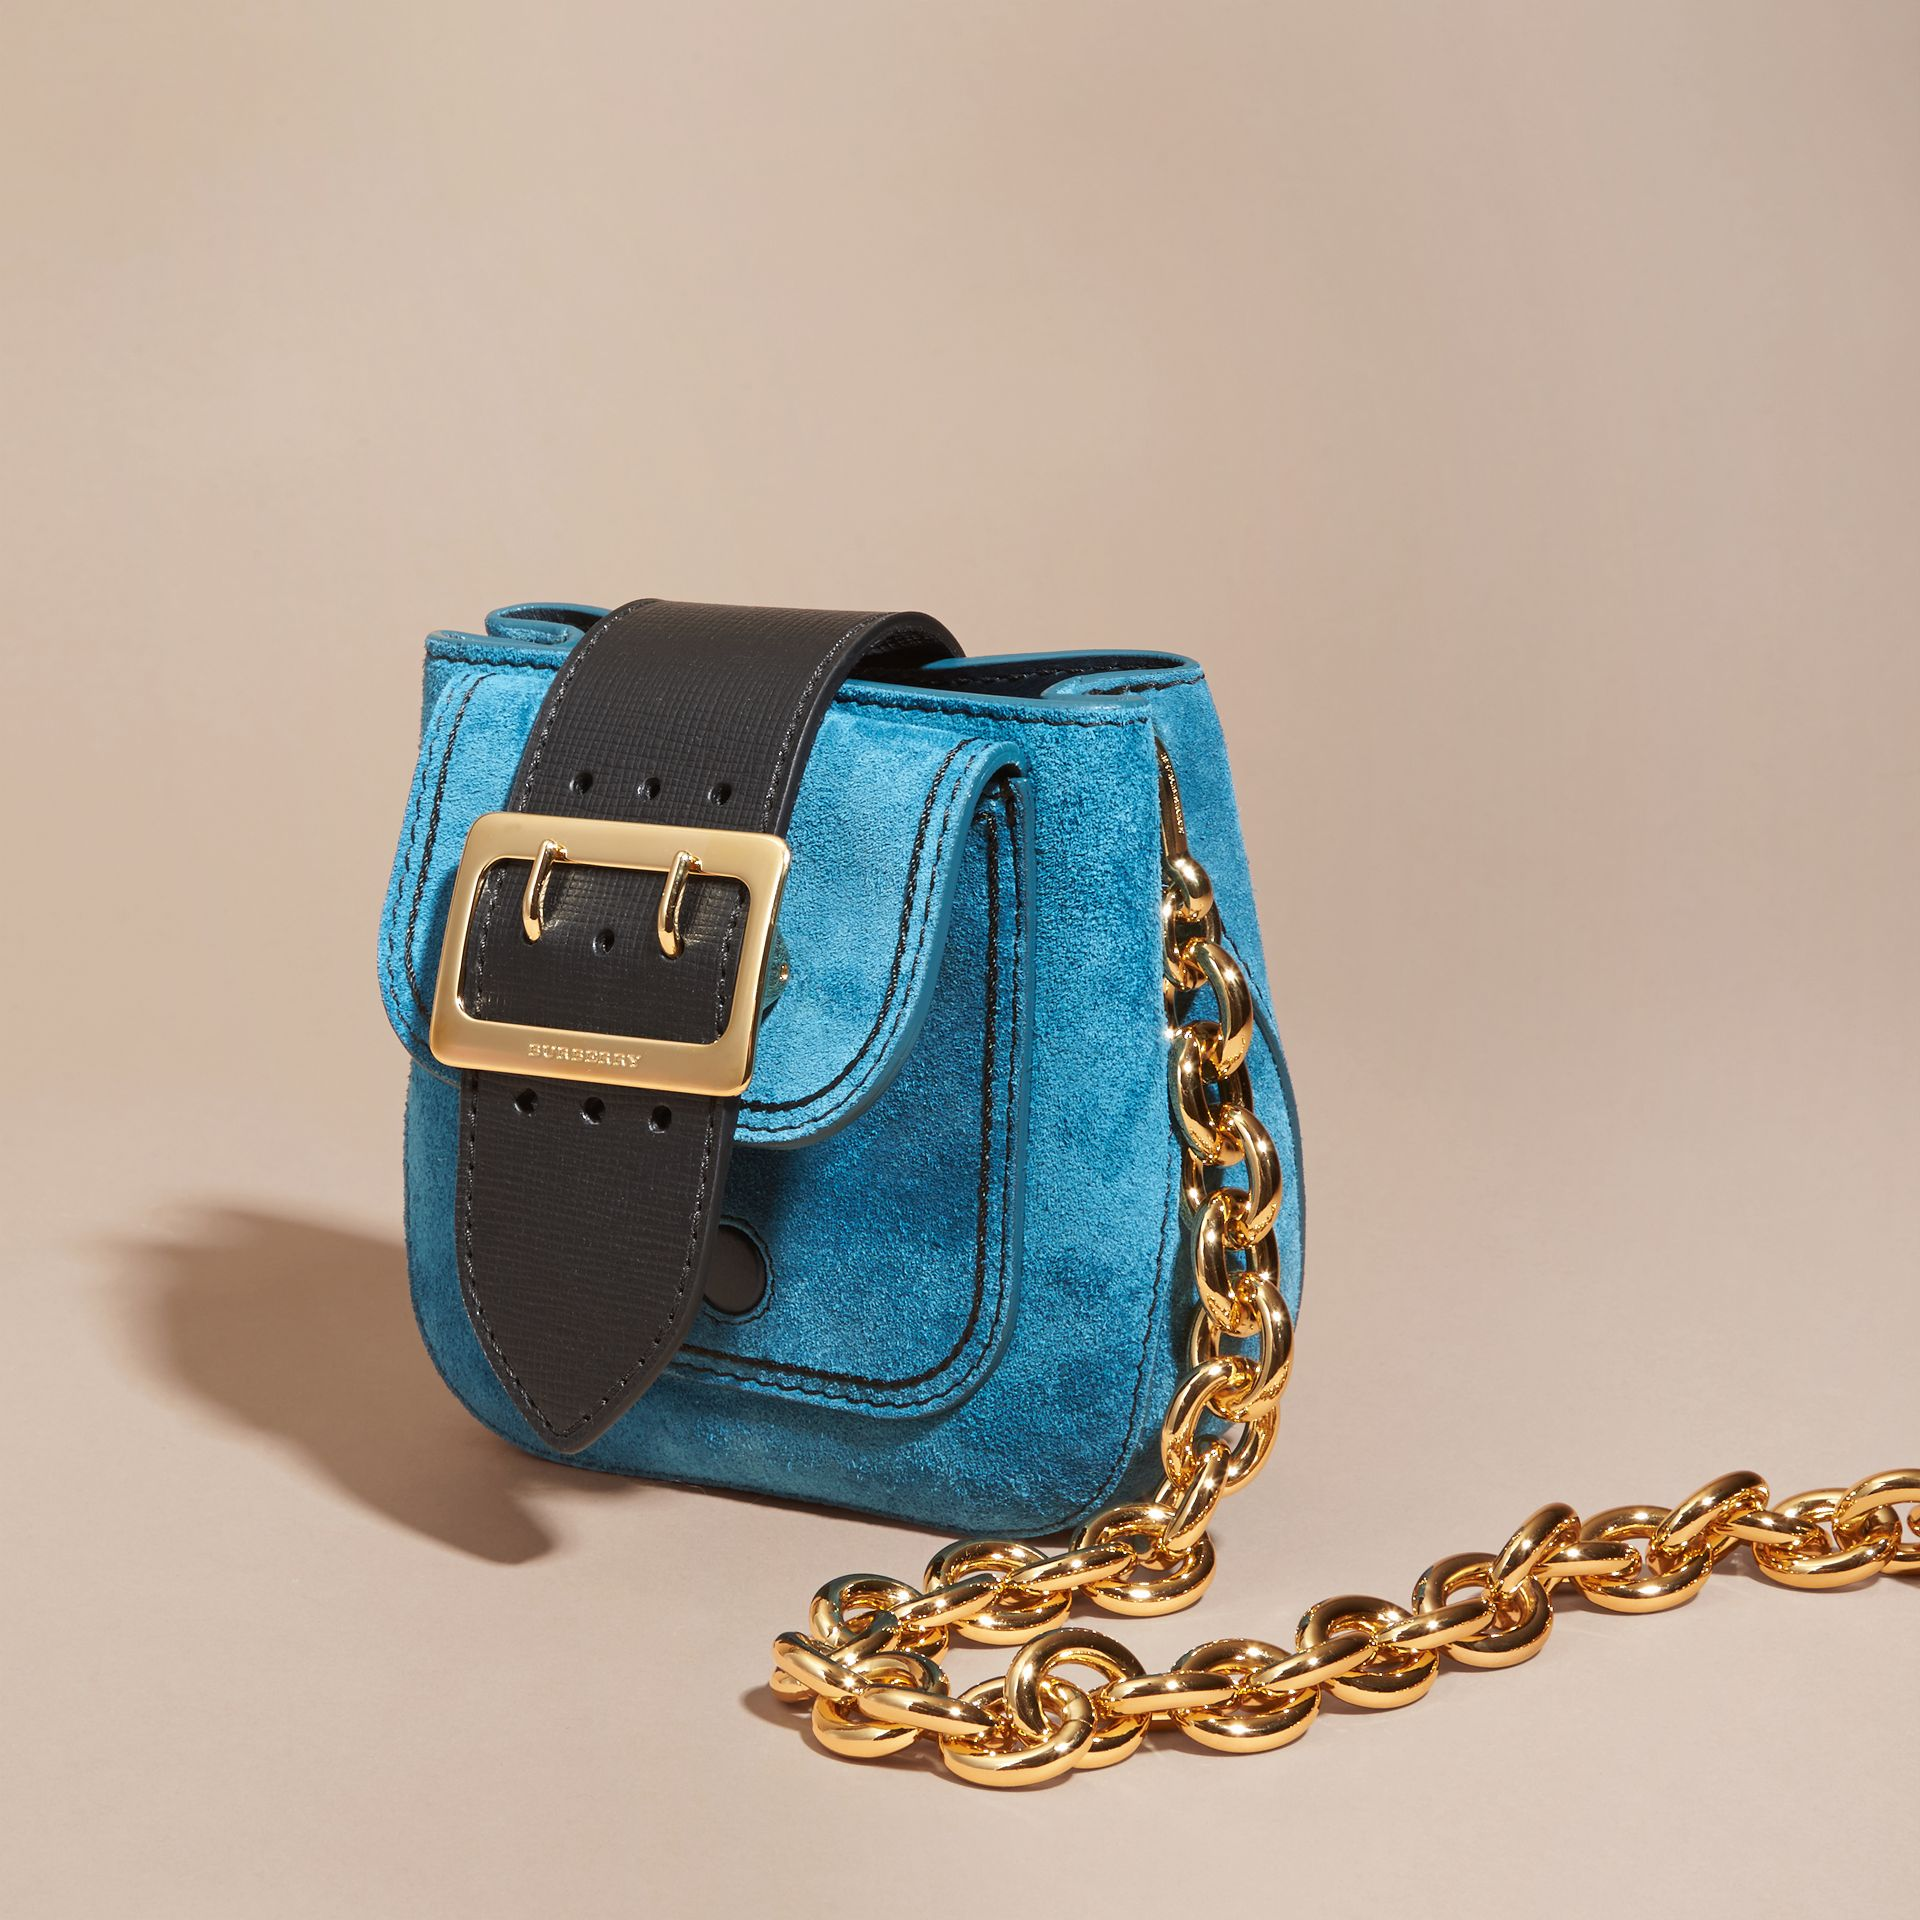 Peacock blue The Small Square Buckle Bag in Suede and Leather Peacock Blue - gallery image 8